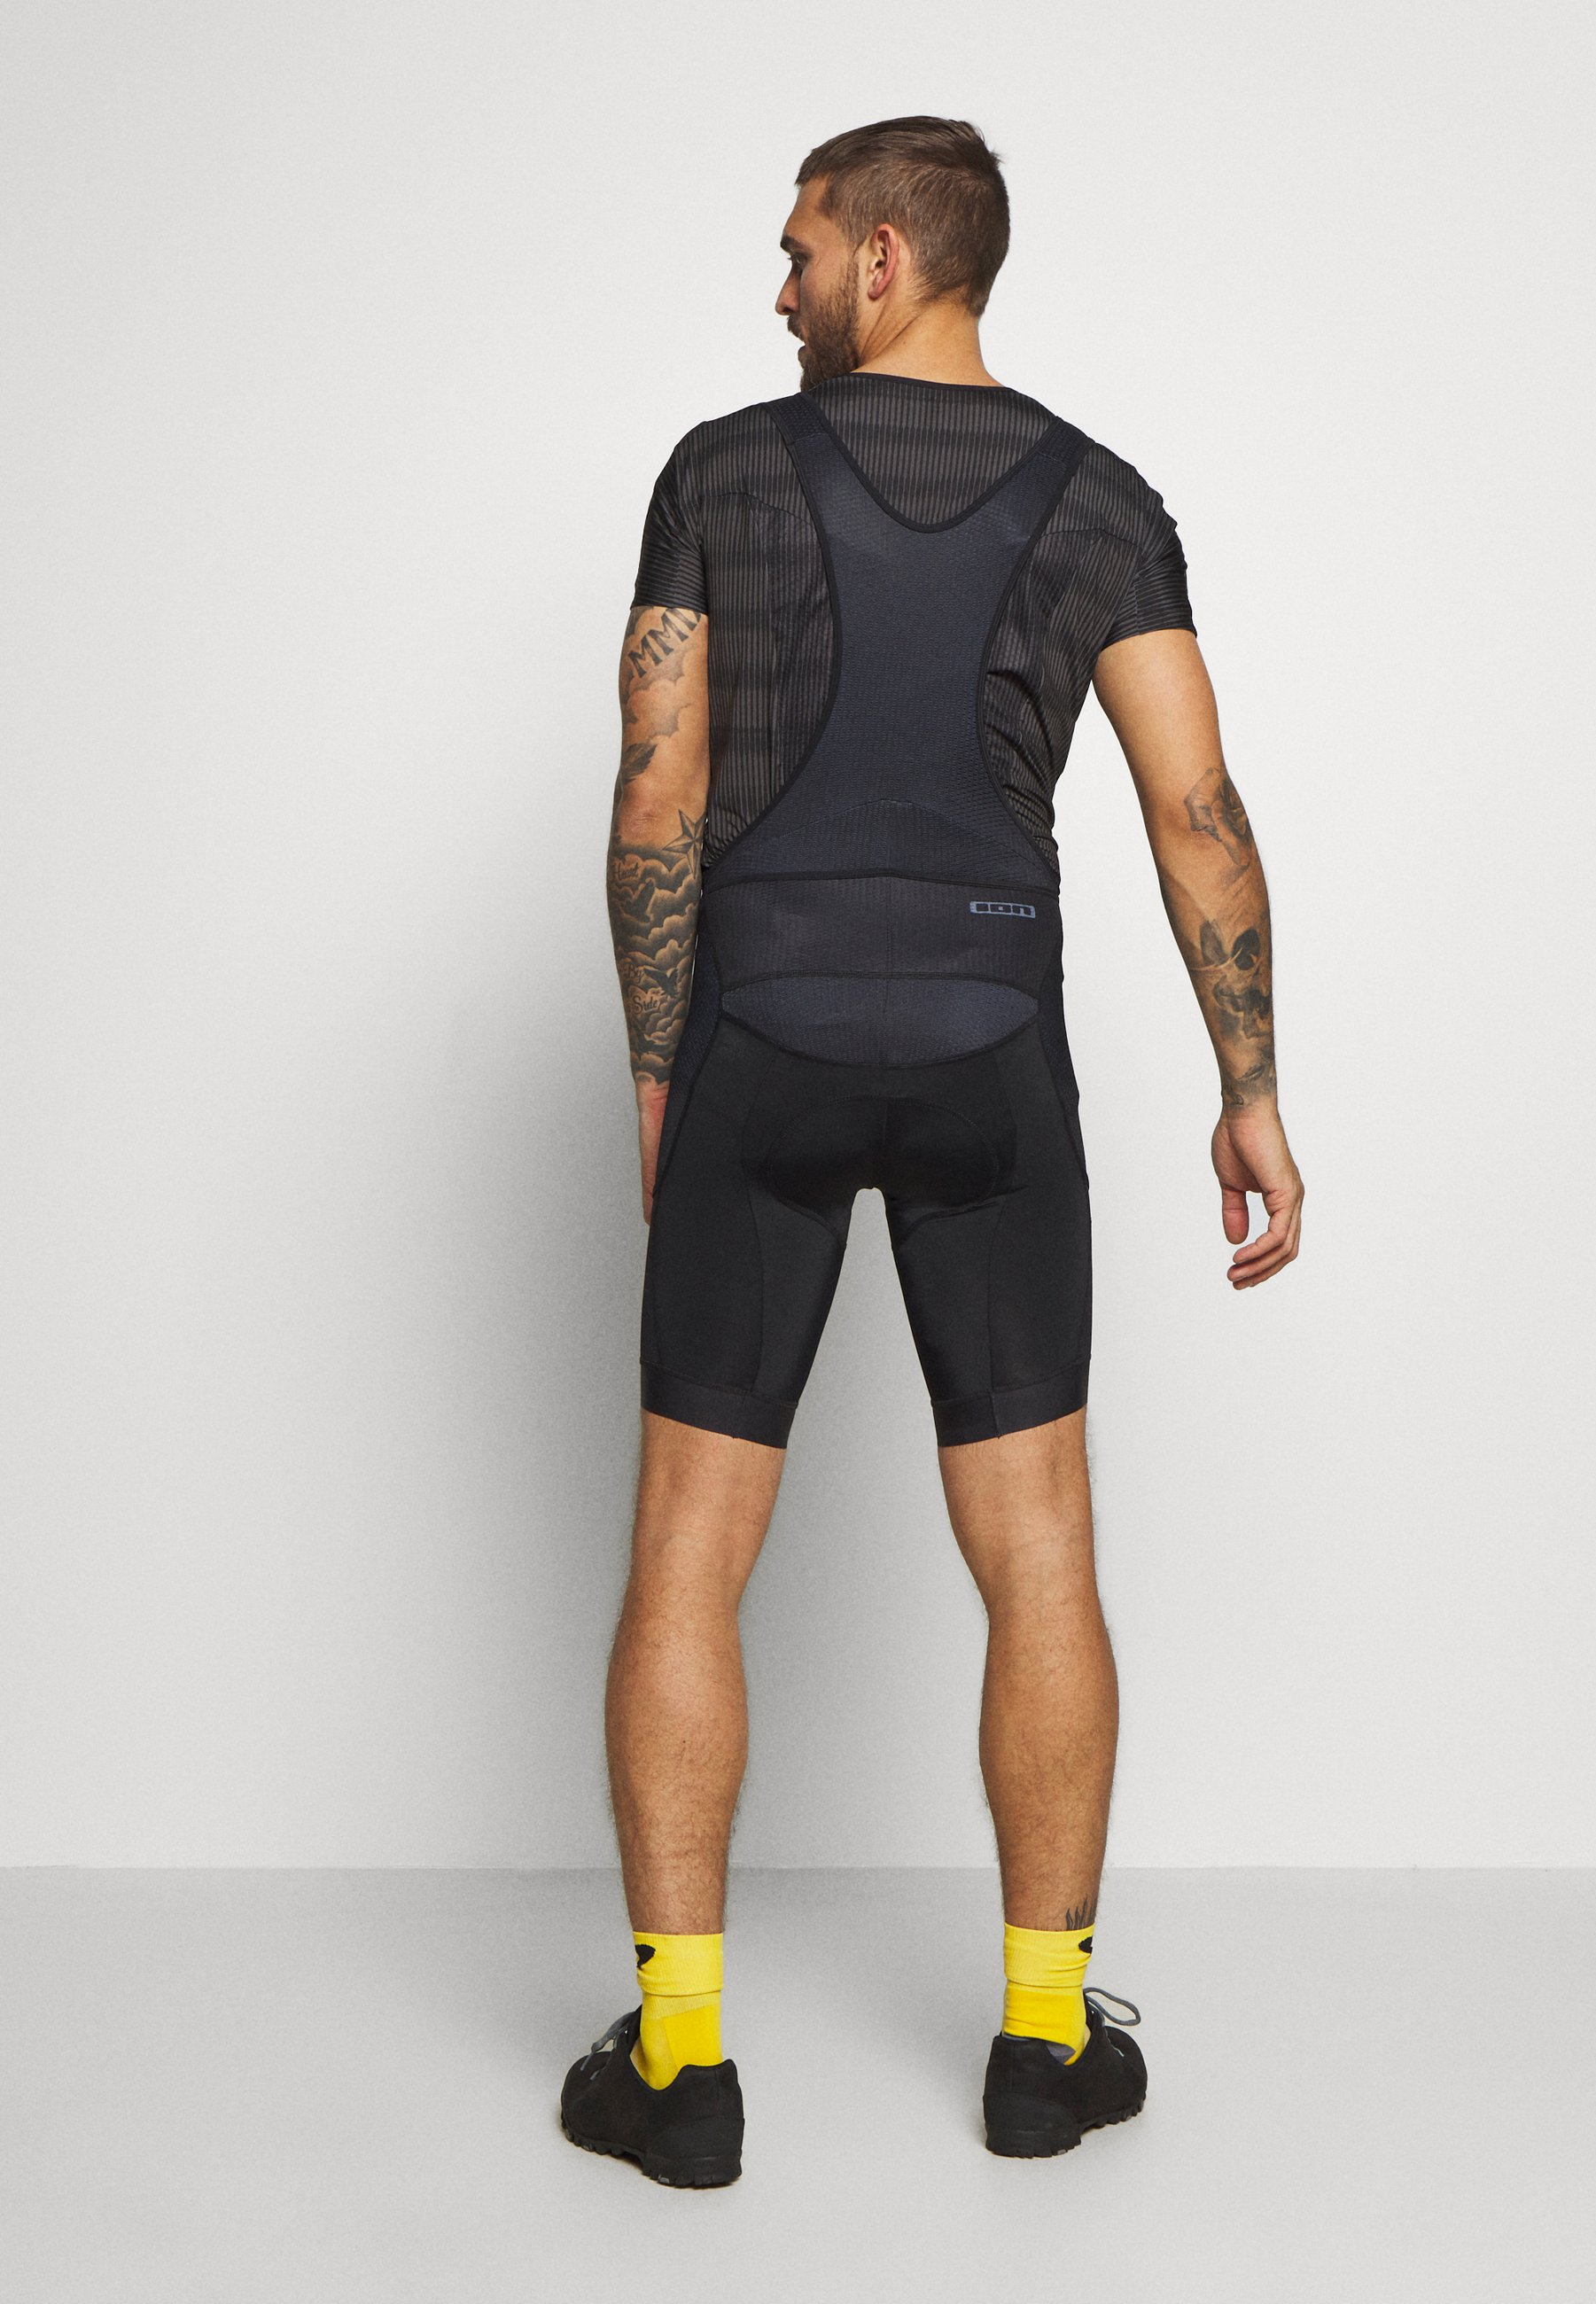 ION IN-BIBSHORTS PAZE - Legginsy - black